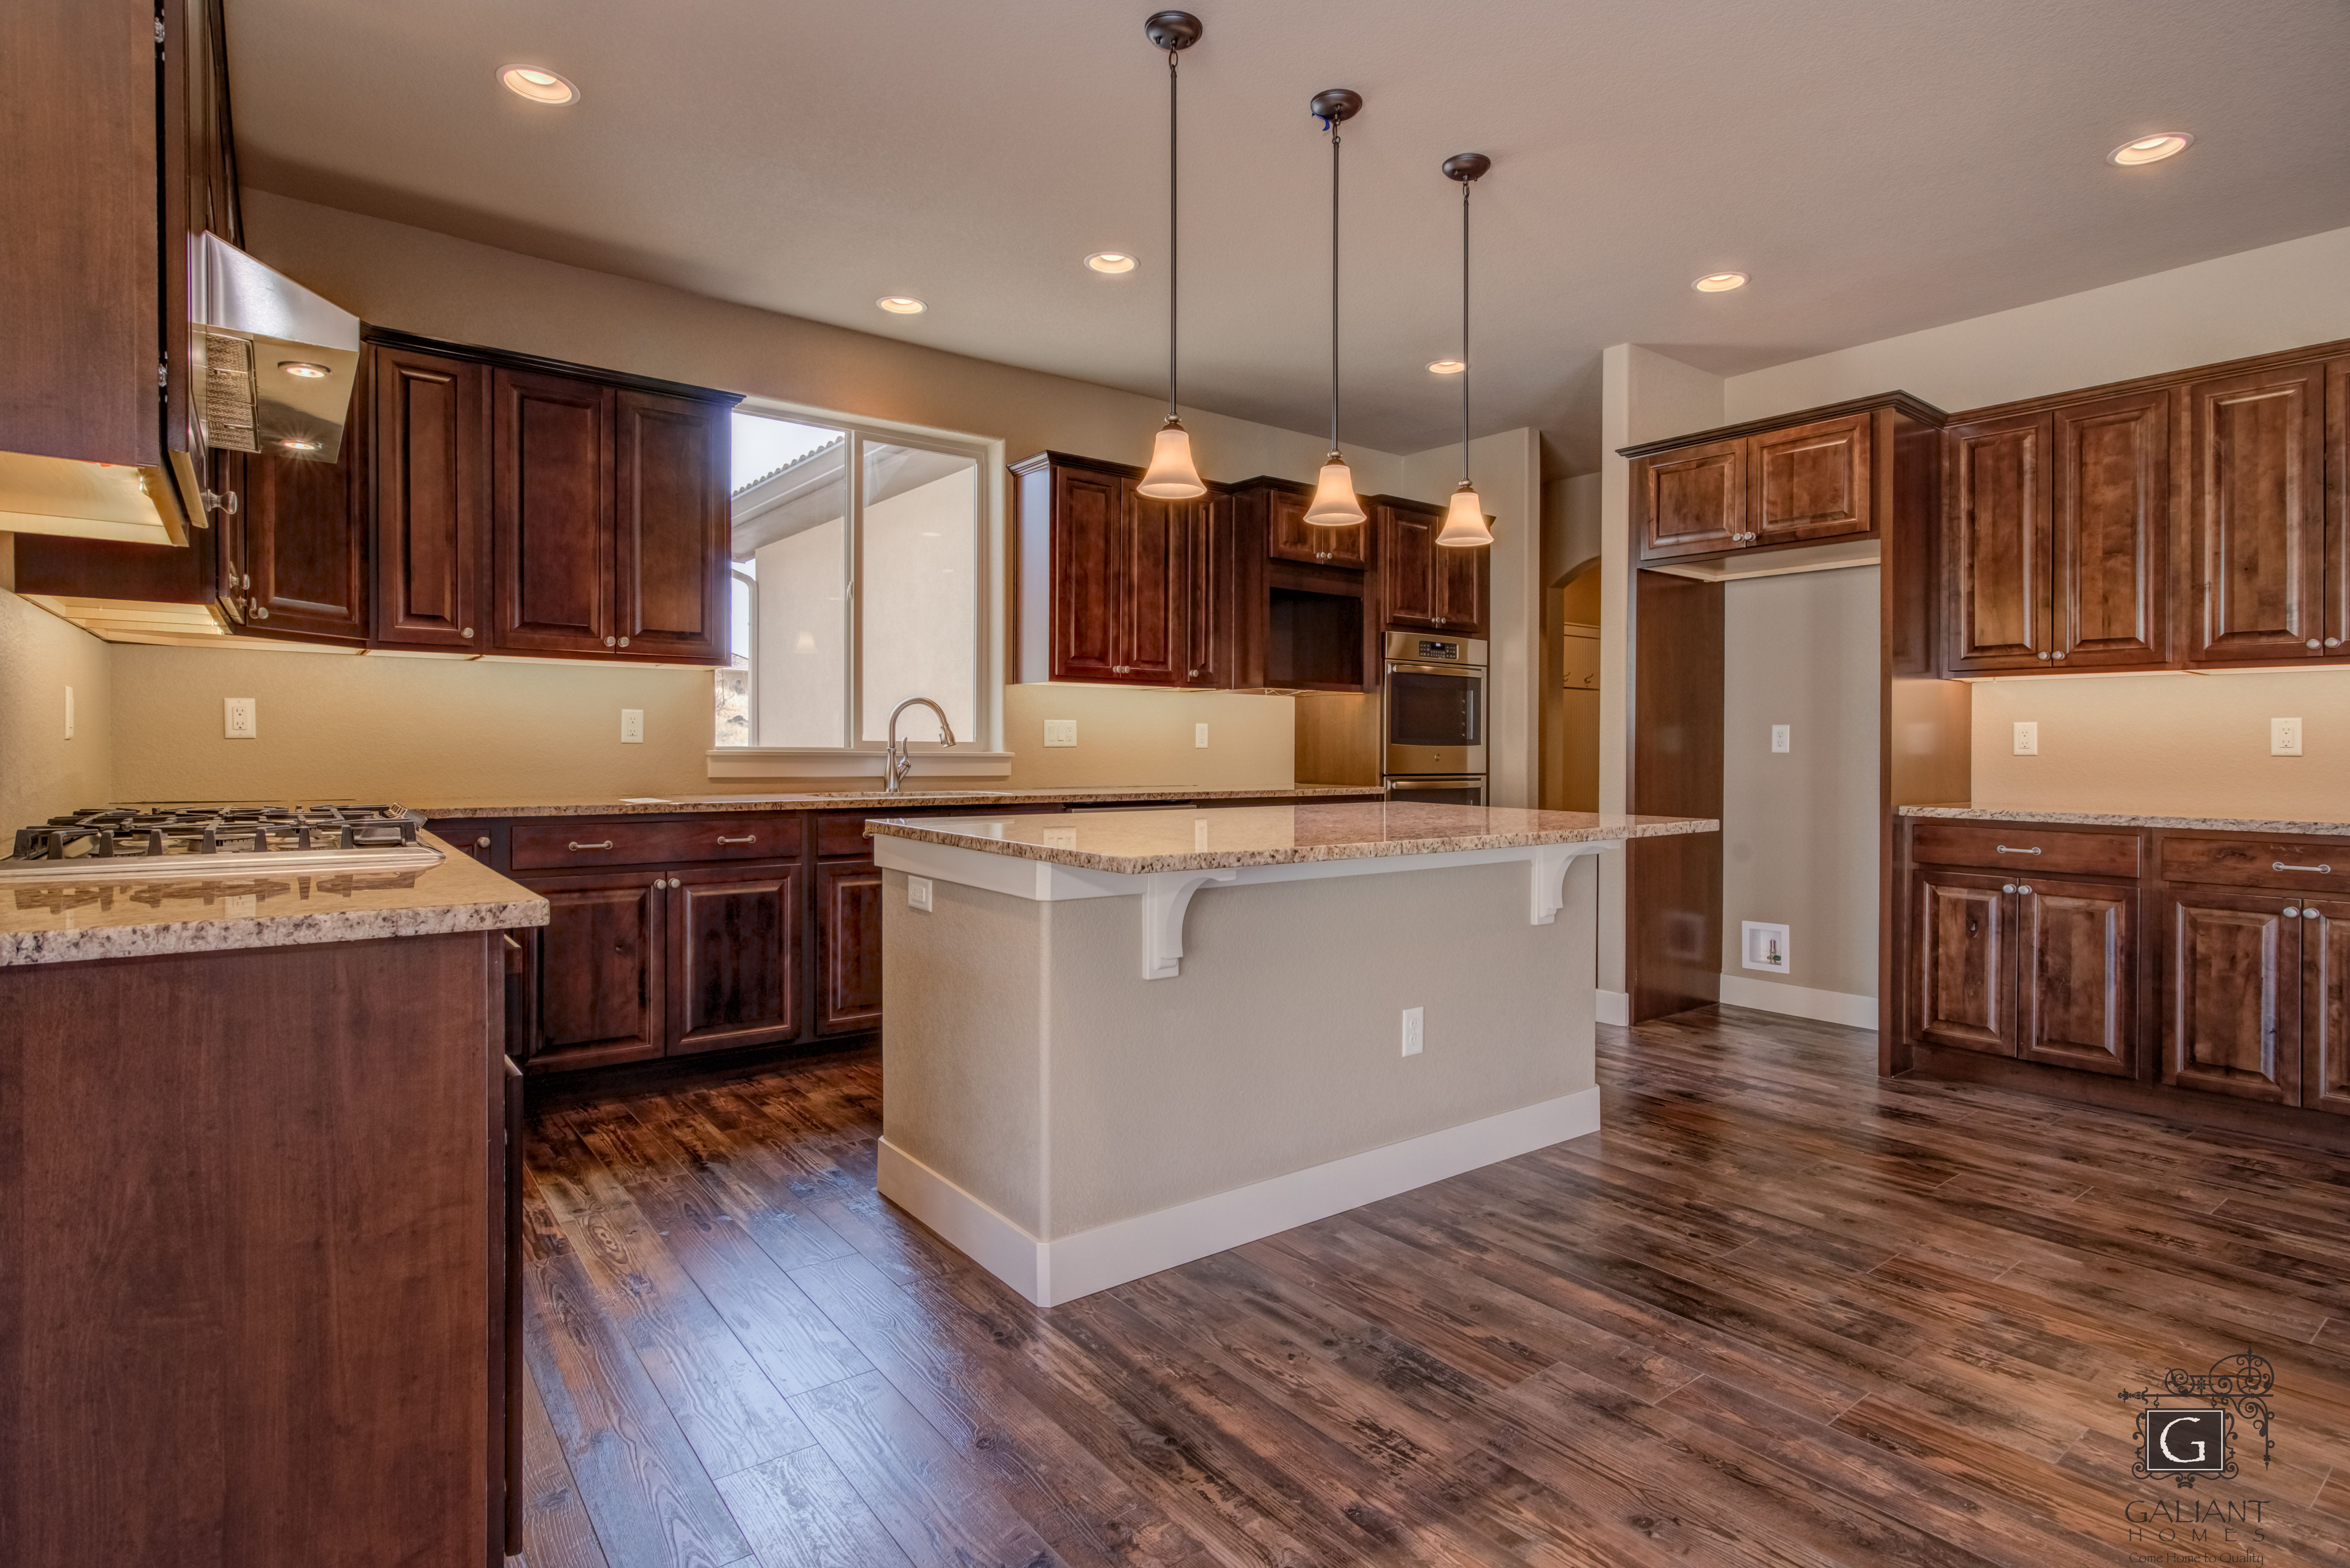 Kitchen featured in the Intrepid (Unfinished Basement) By Galiant Homes in Colorado Springs, CO